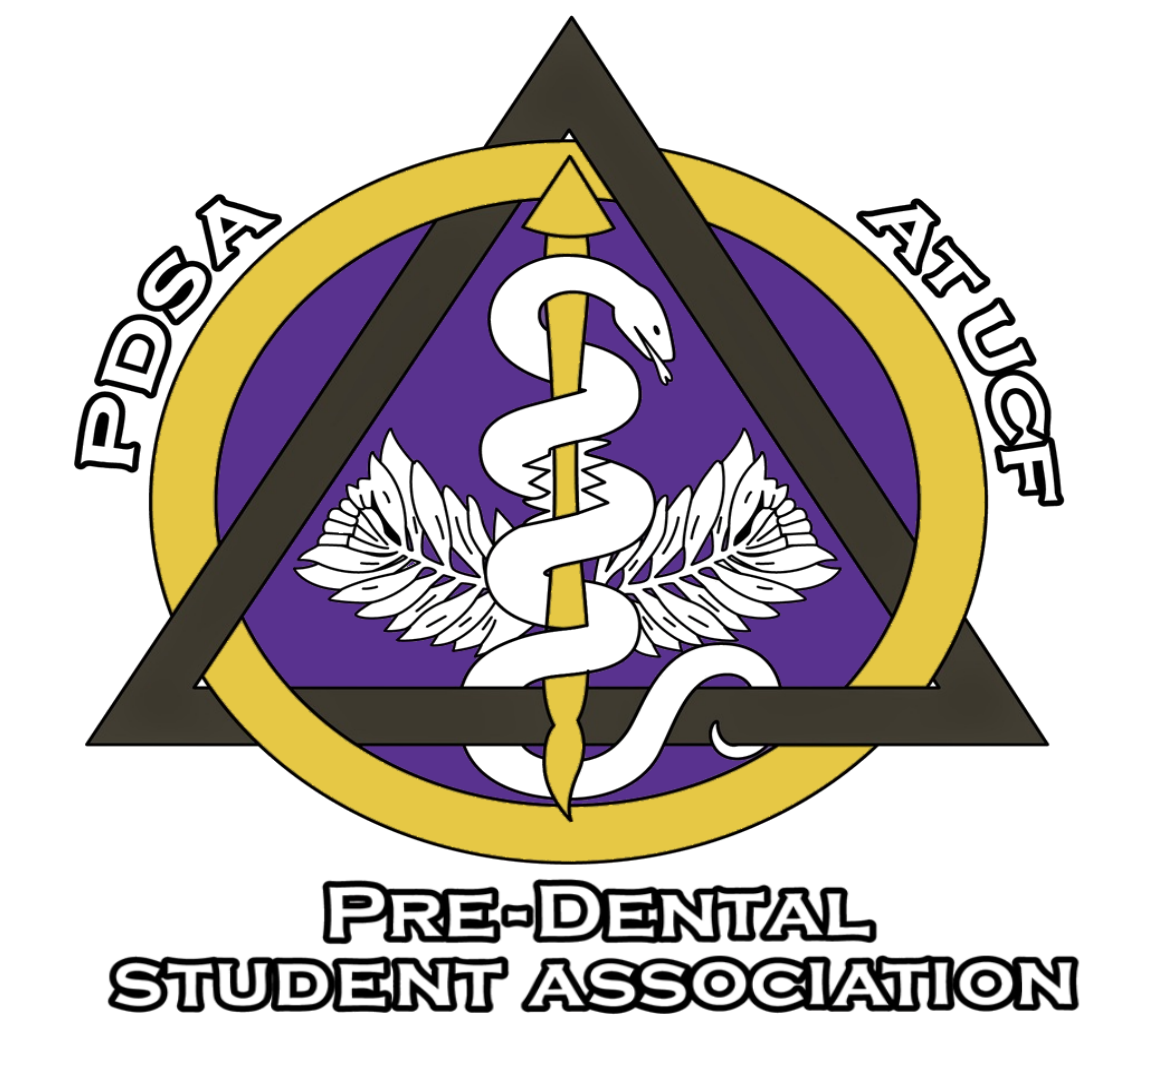 Pre-Dental Student Association